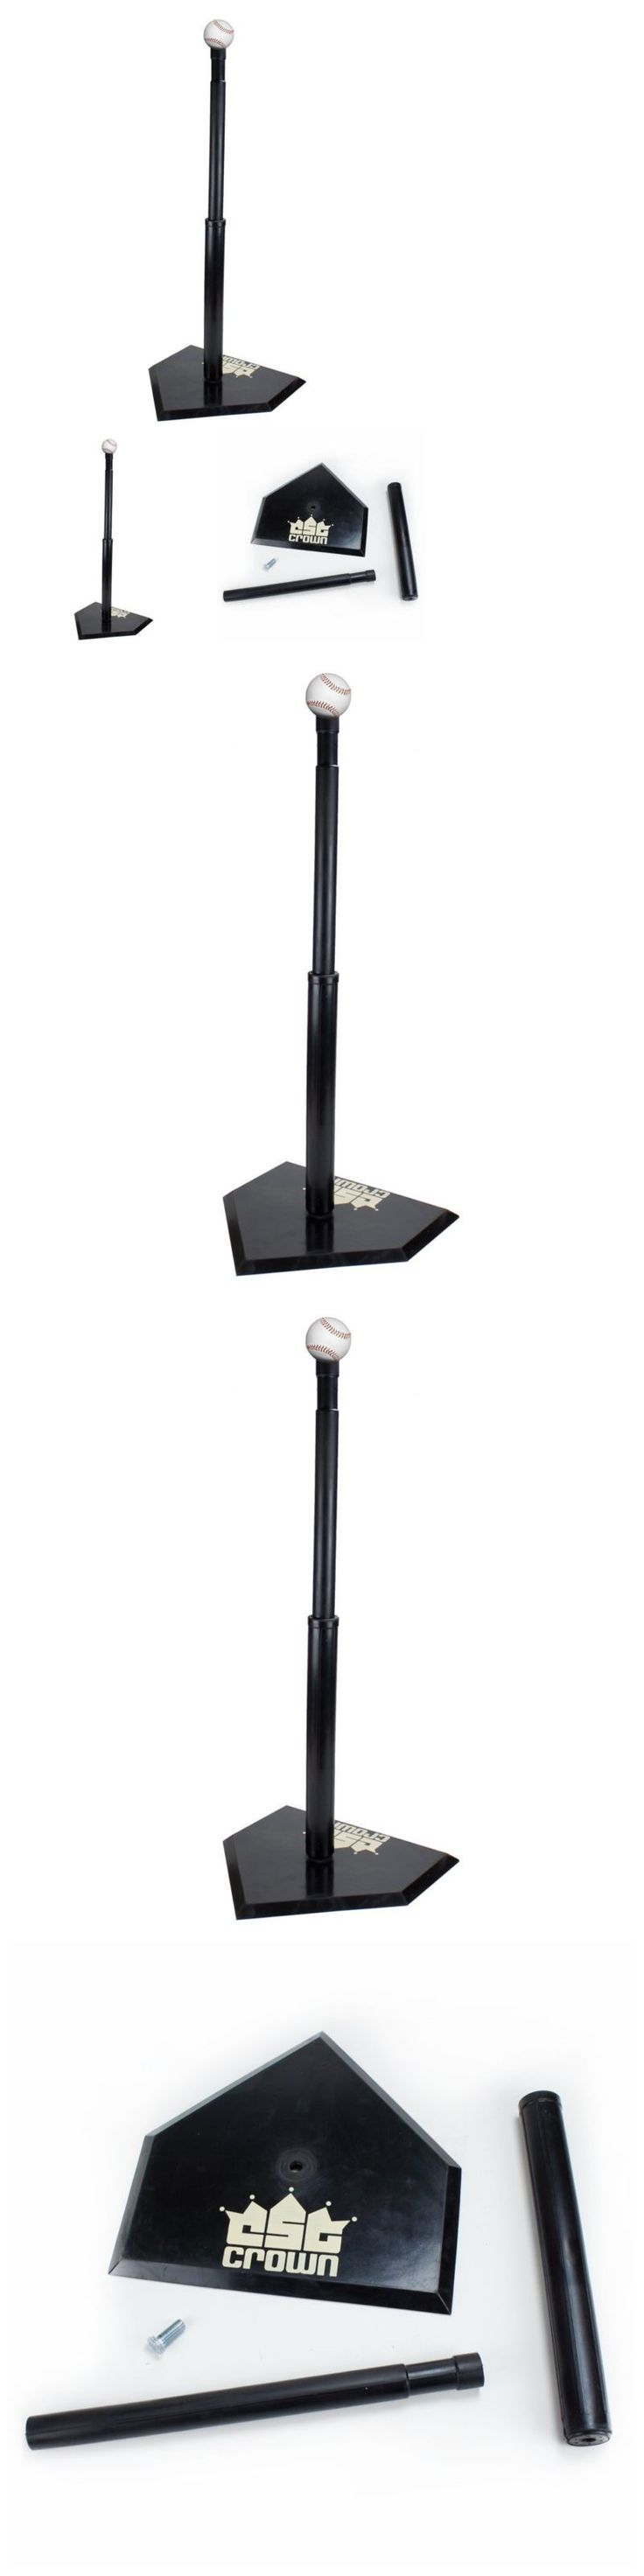 Batting Tees 108139: Crown Sporting Goods Youth Adjustable Height Baseball Batting Tee -> BUY IT NOW ONLY: $40.95 on eBay!